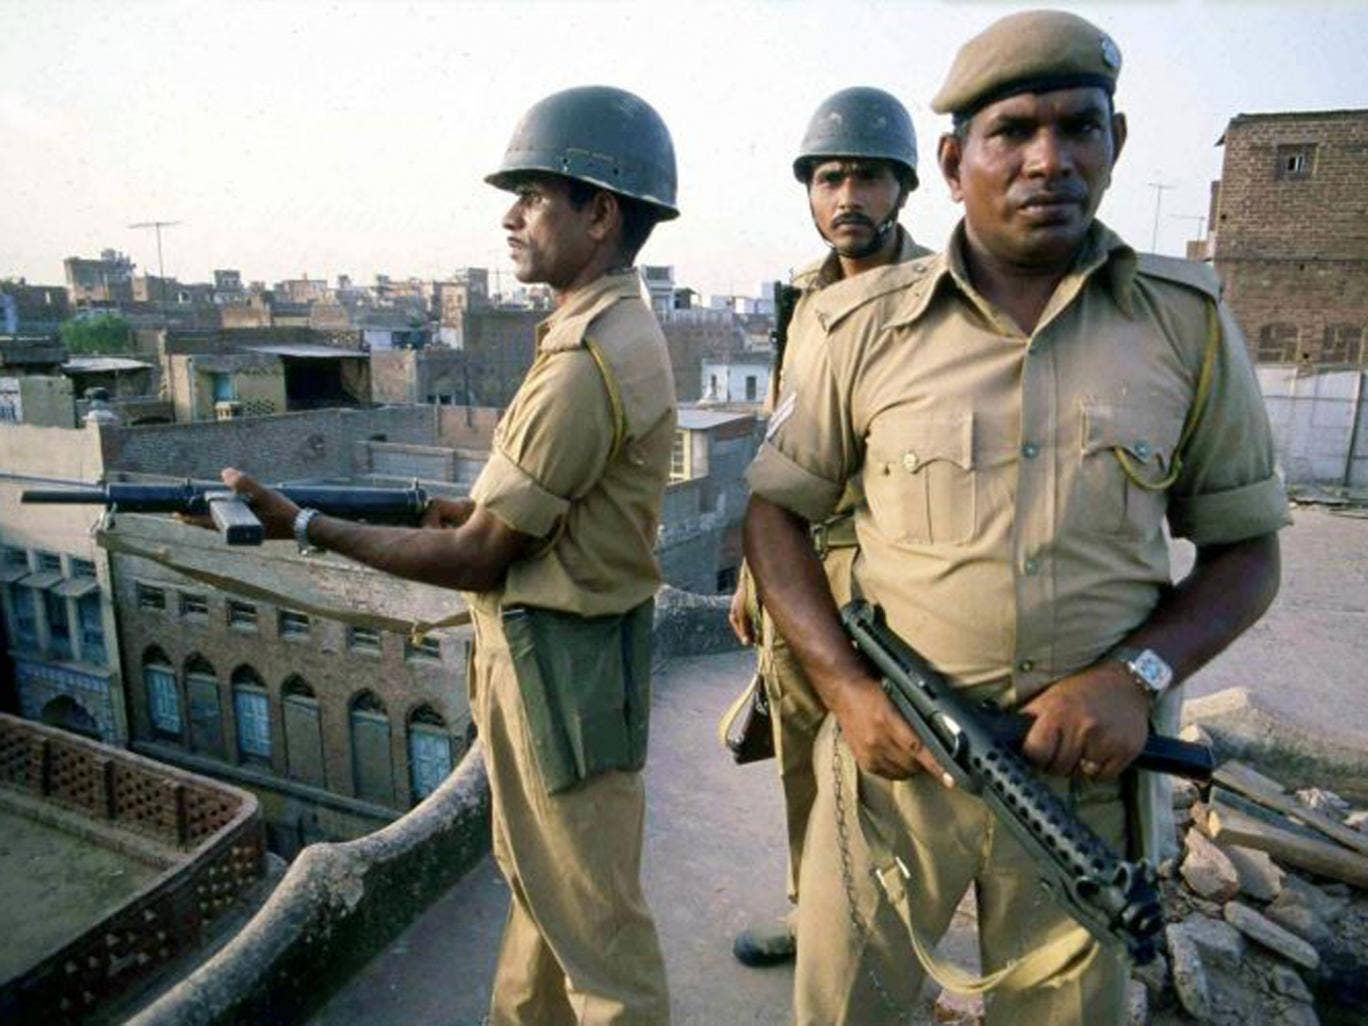 In this file photo from 6 June, 1984, Indian troops take up position on rooftops around the Golden Temple in Amritsar